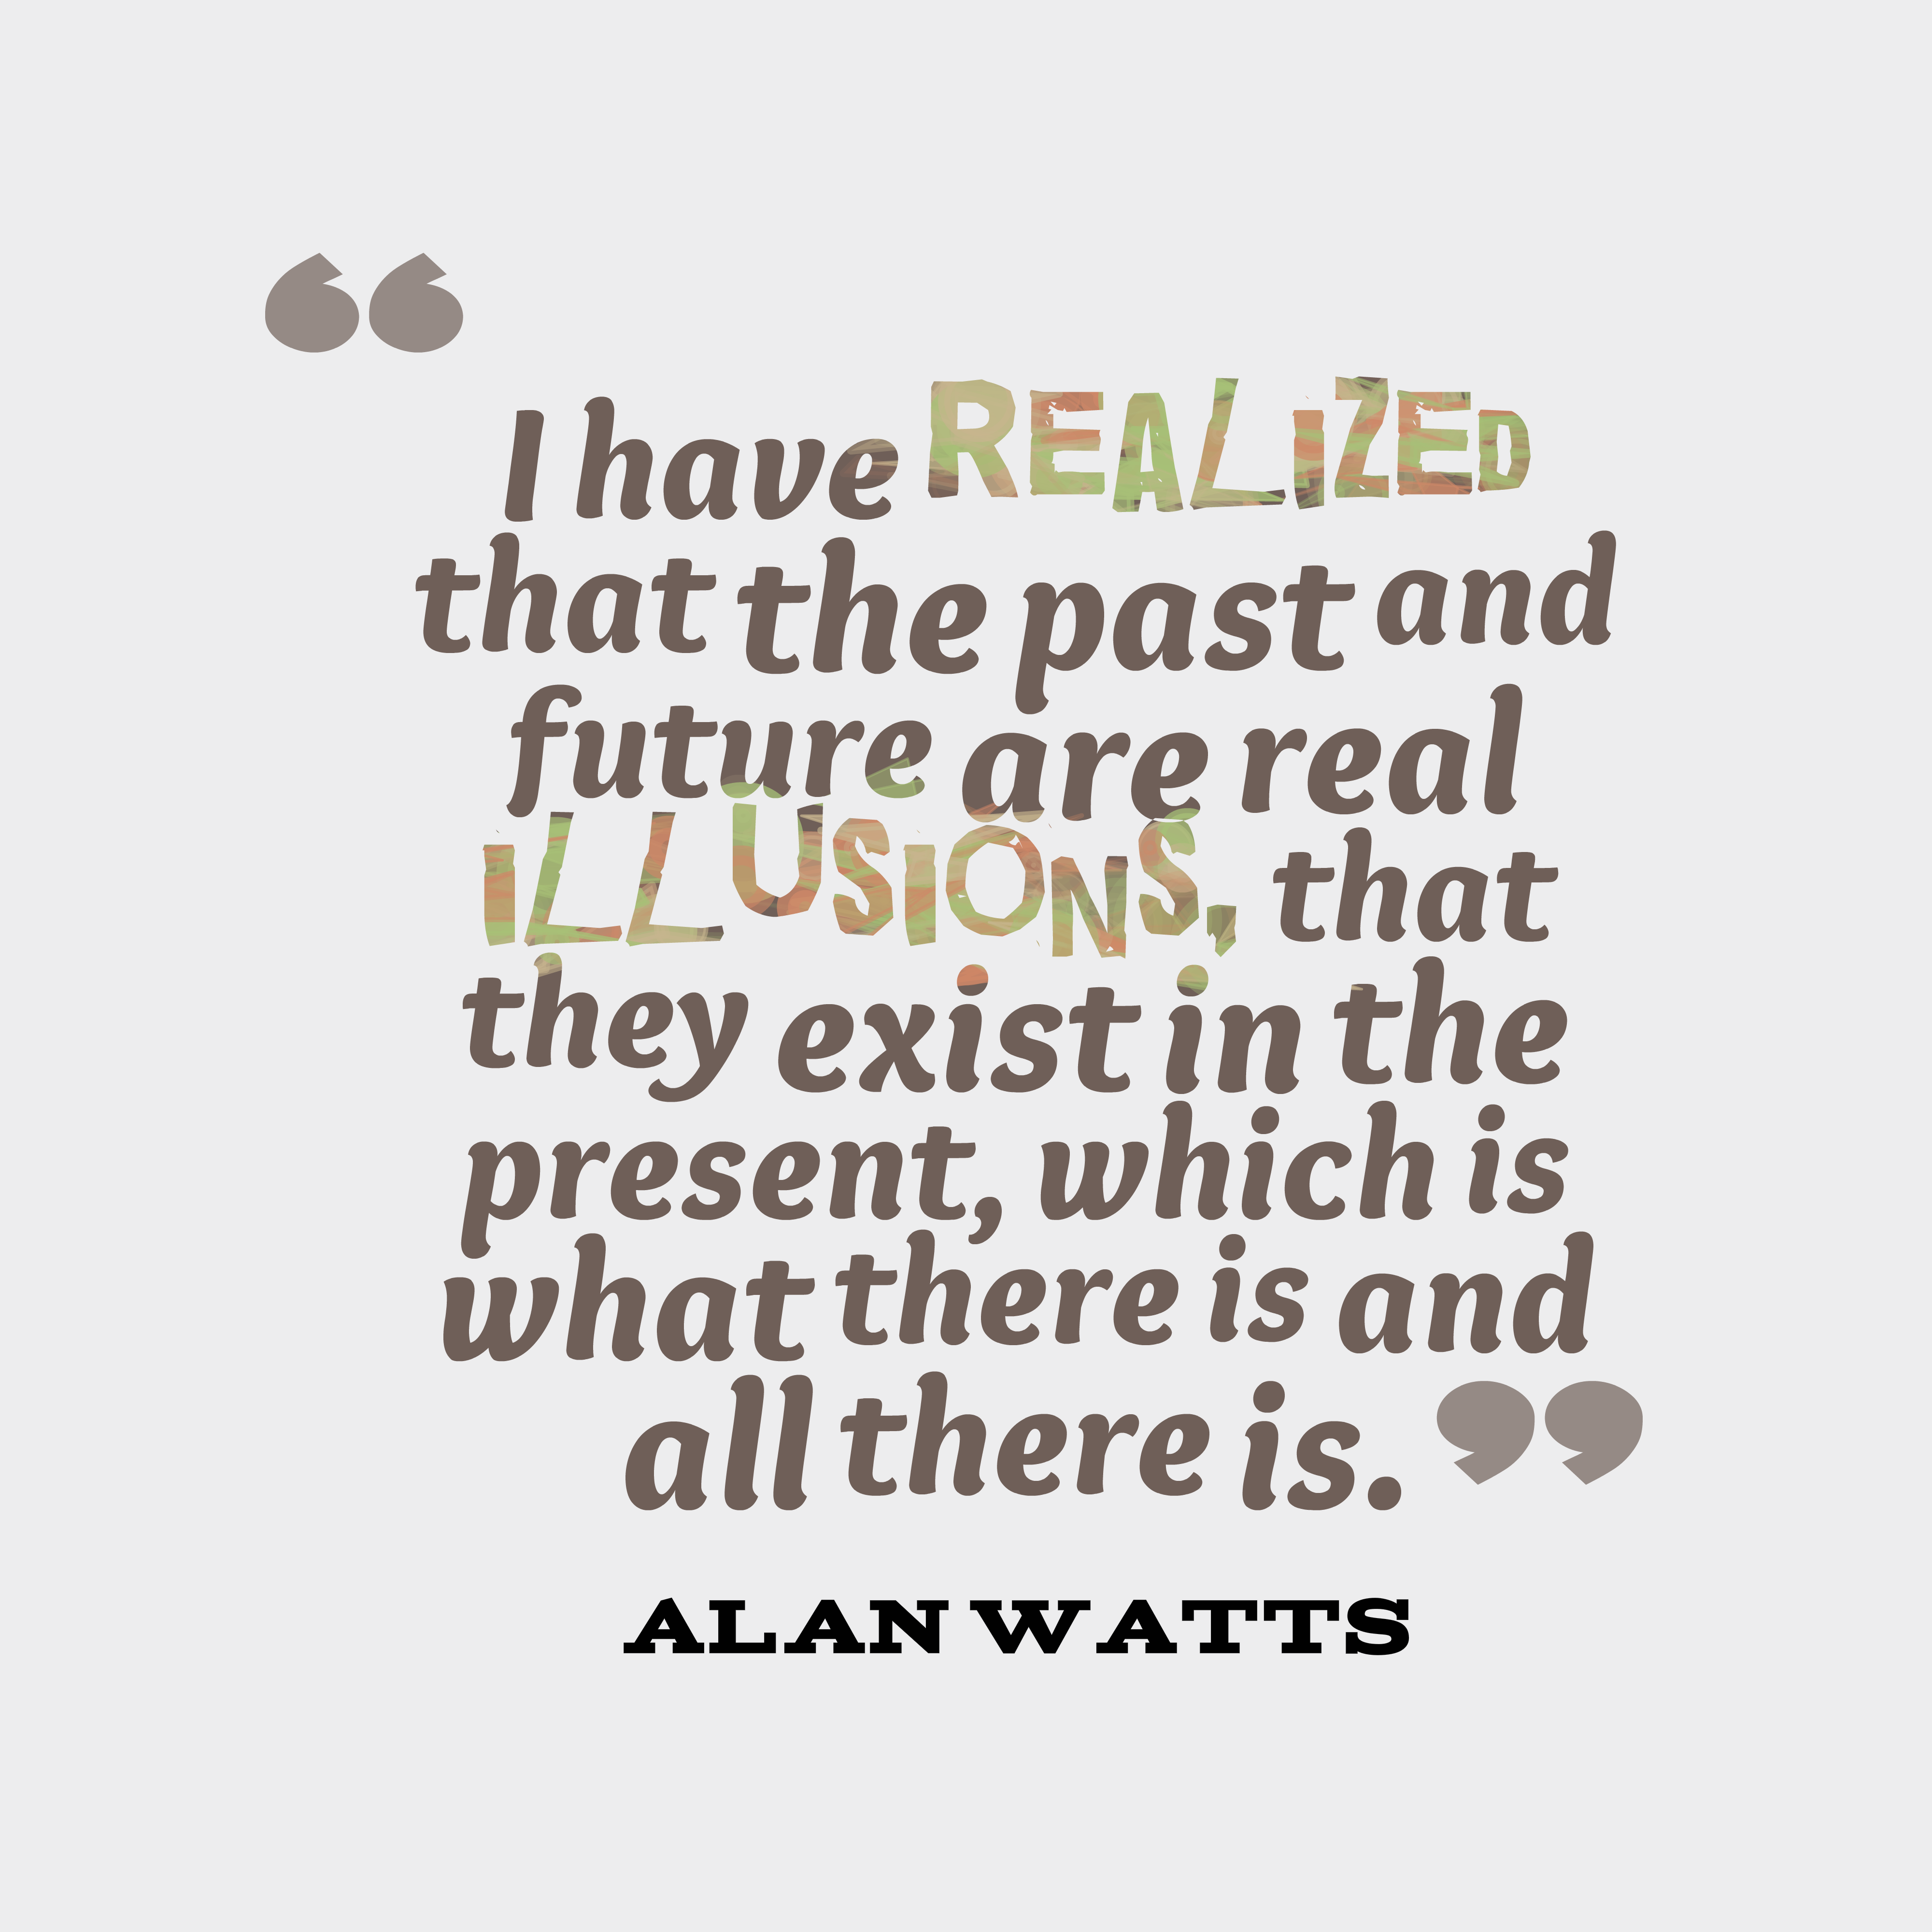 Quotes image of I have realized that the past and future are real illusions, that they exist in the present, which is what there is and all there is.